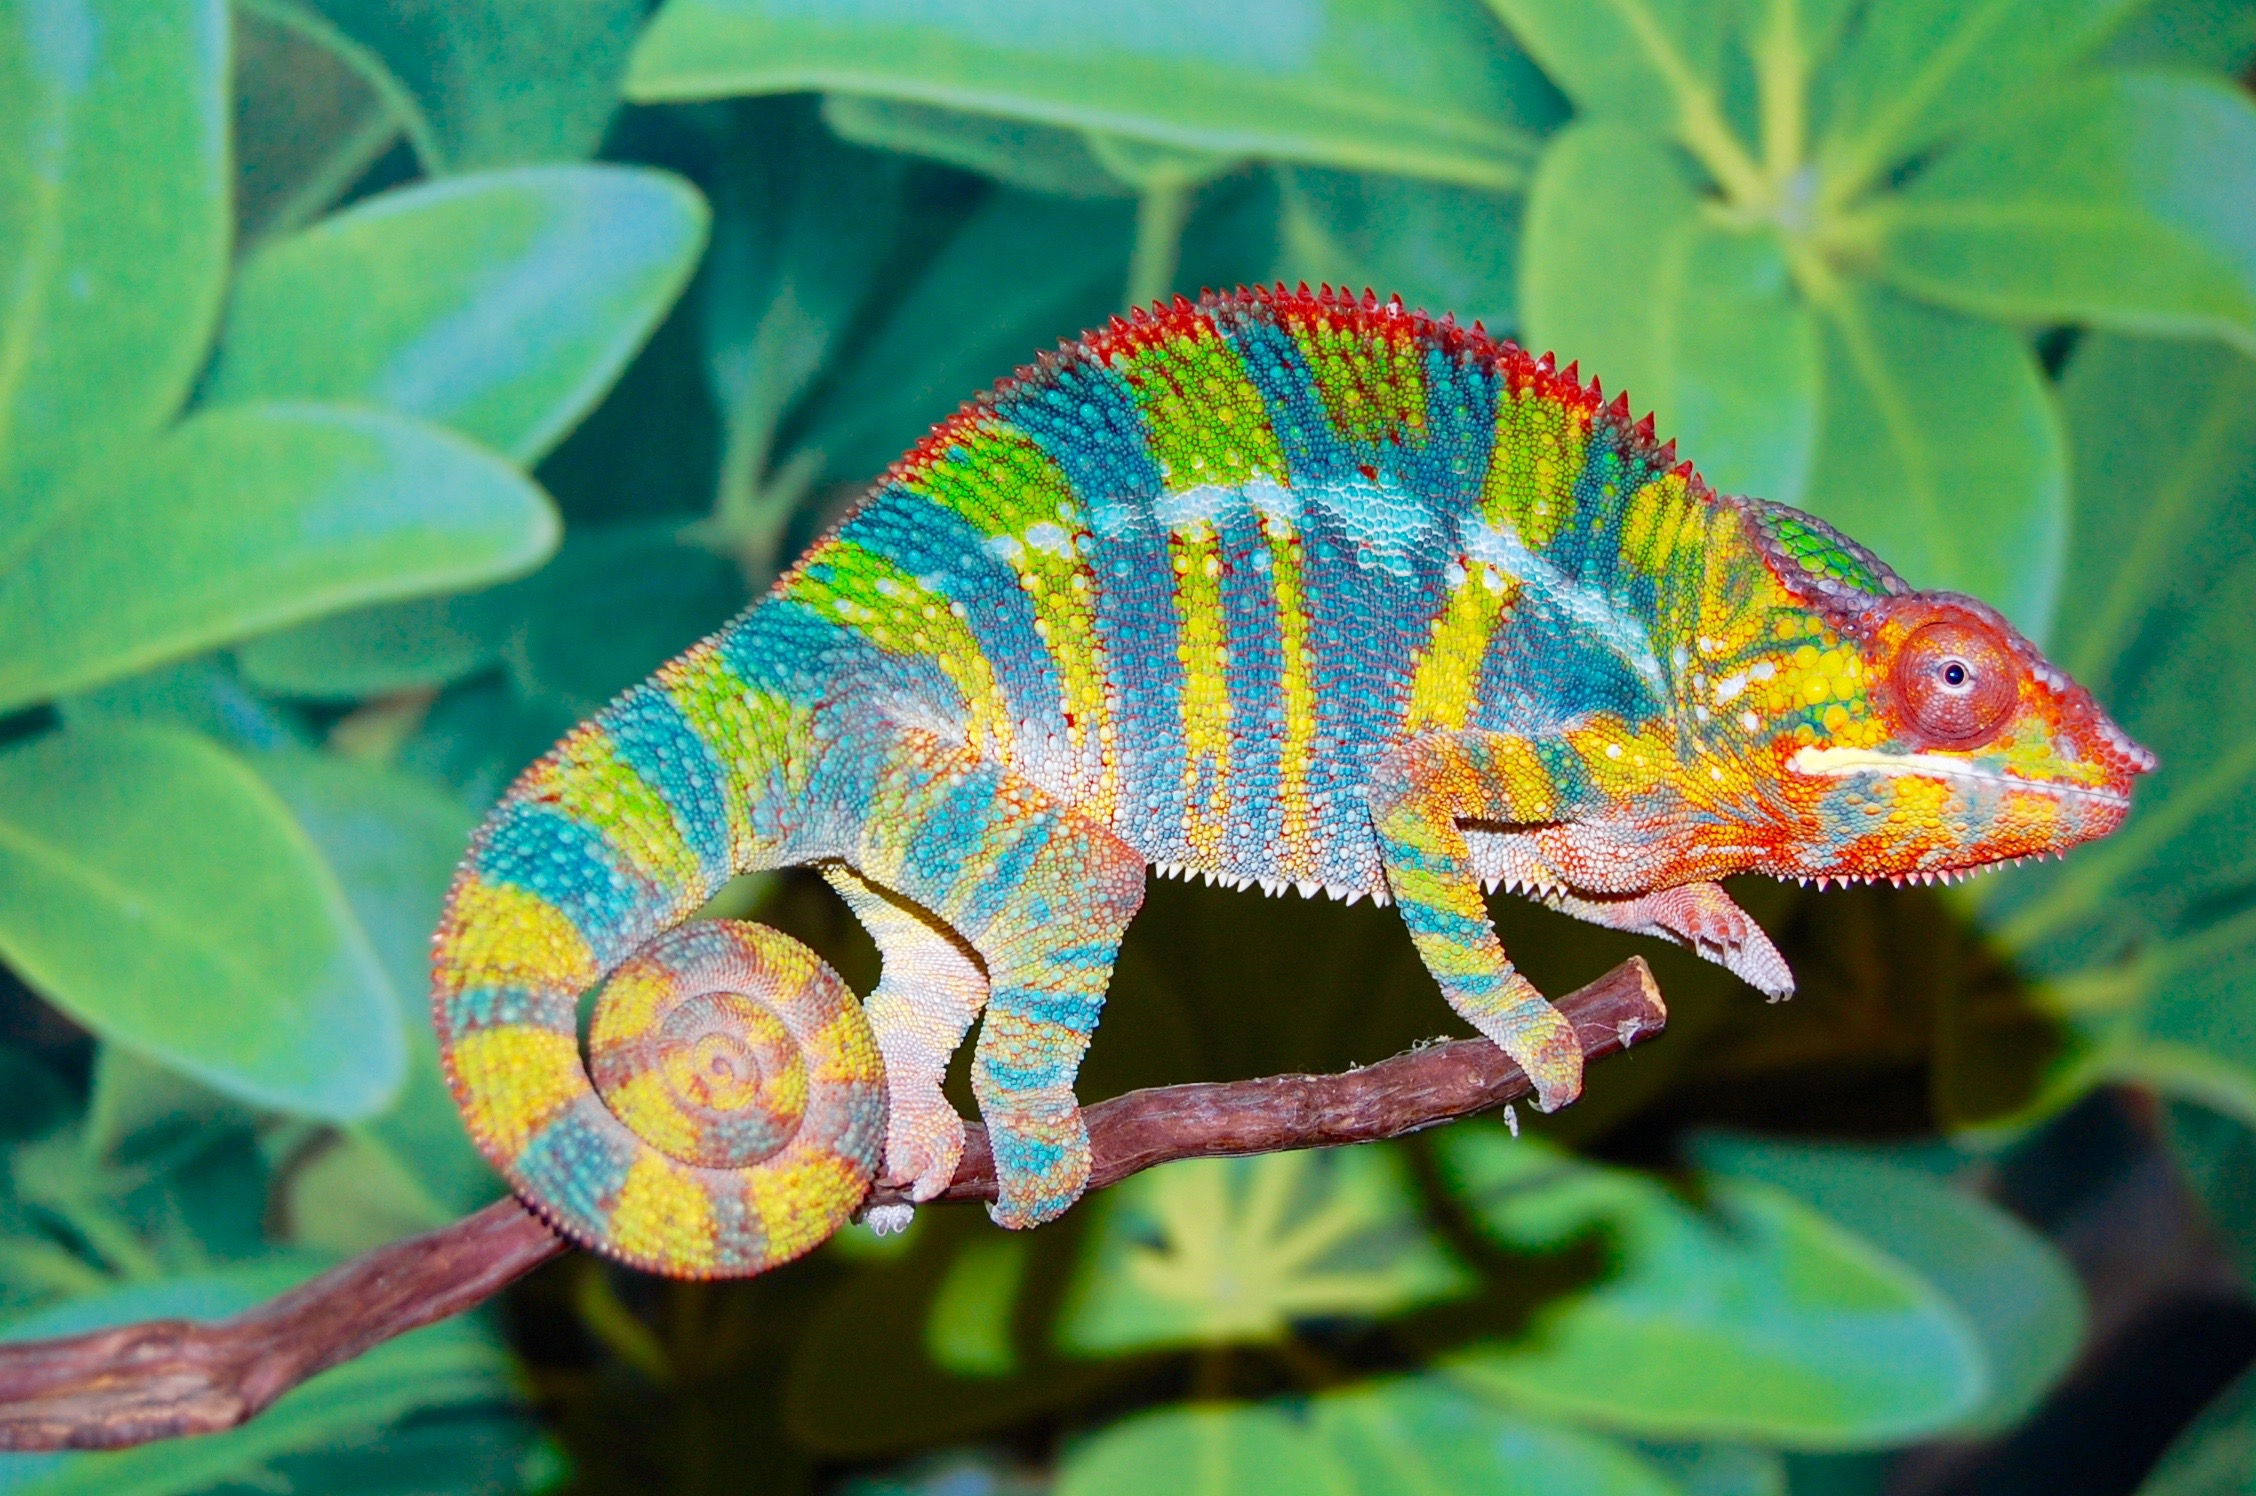 Ambilobe panther chameleon for sale flynn bloodline fl chams ambilobe panther chameleon for sale panther chameleon for sale buy panther chameleon panther thecheapjerseys Choice Image